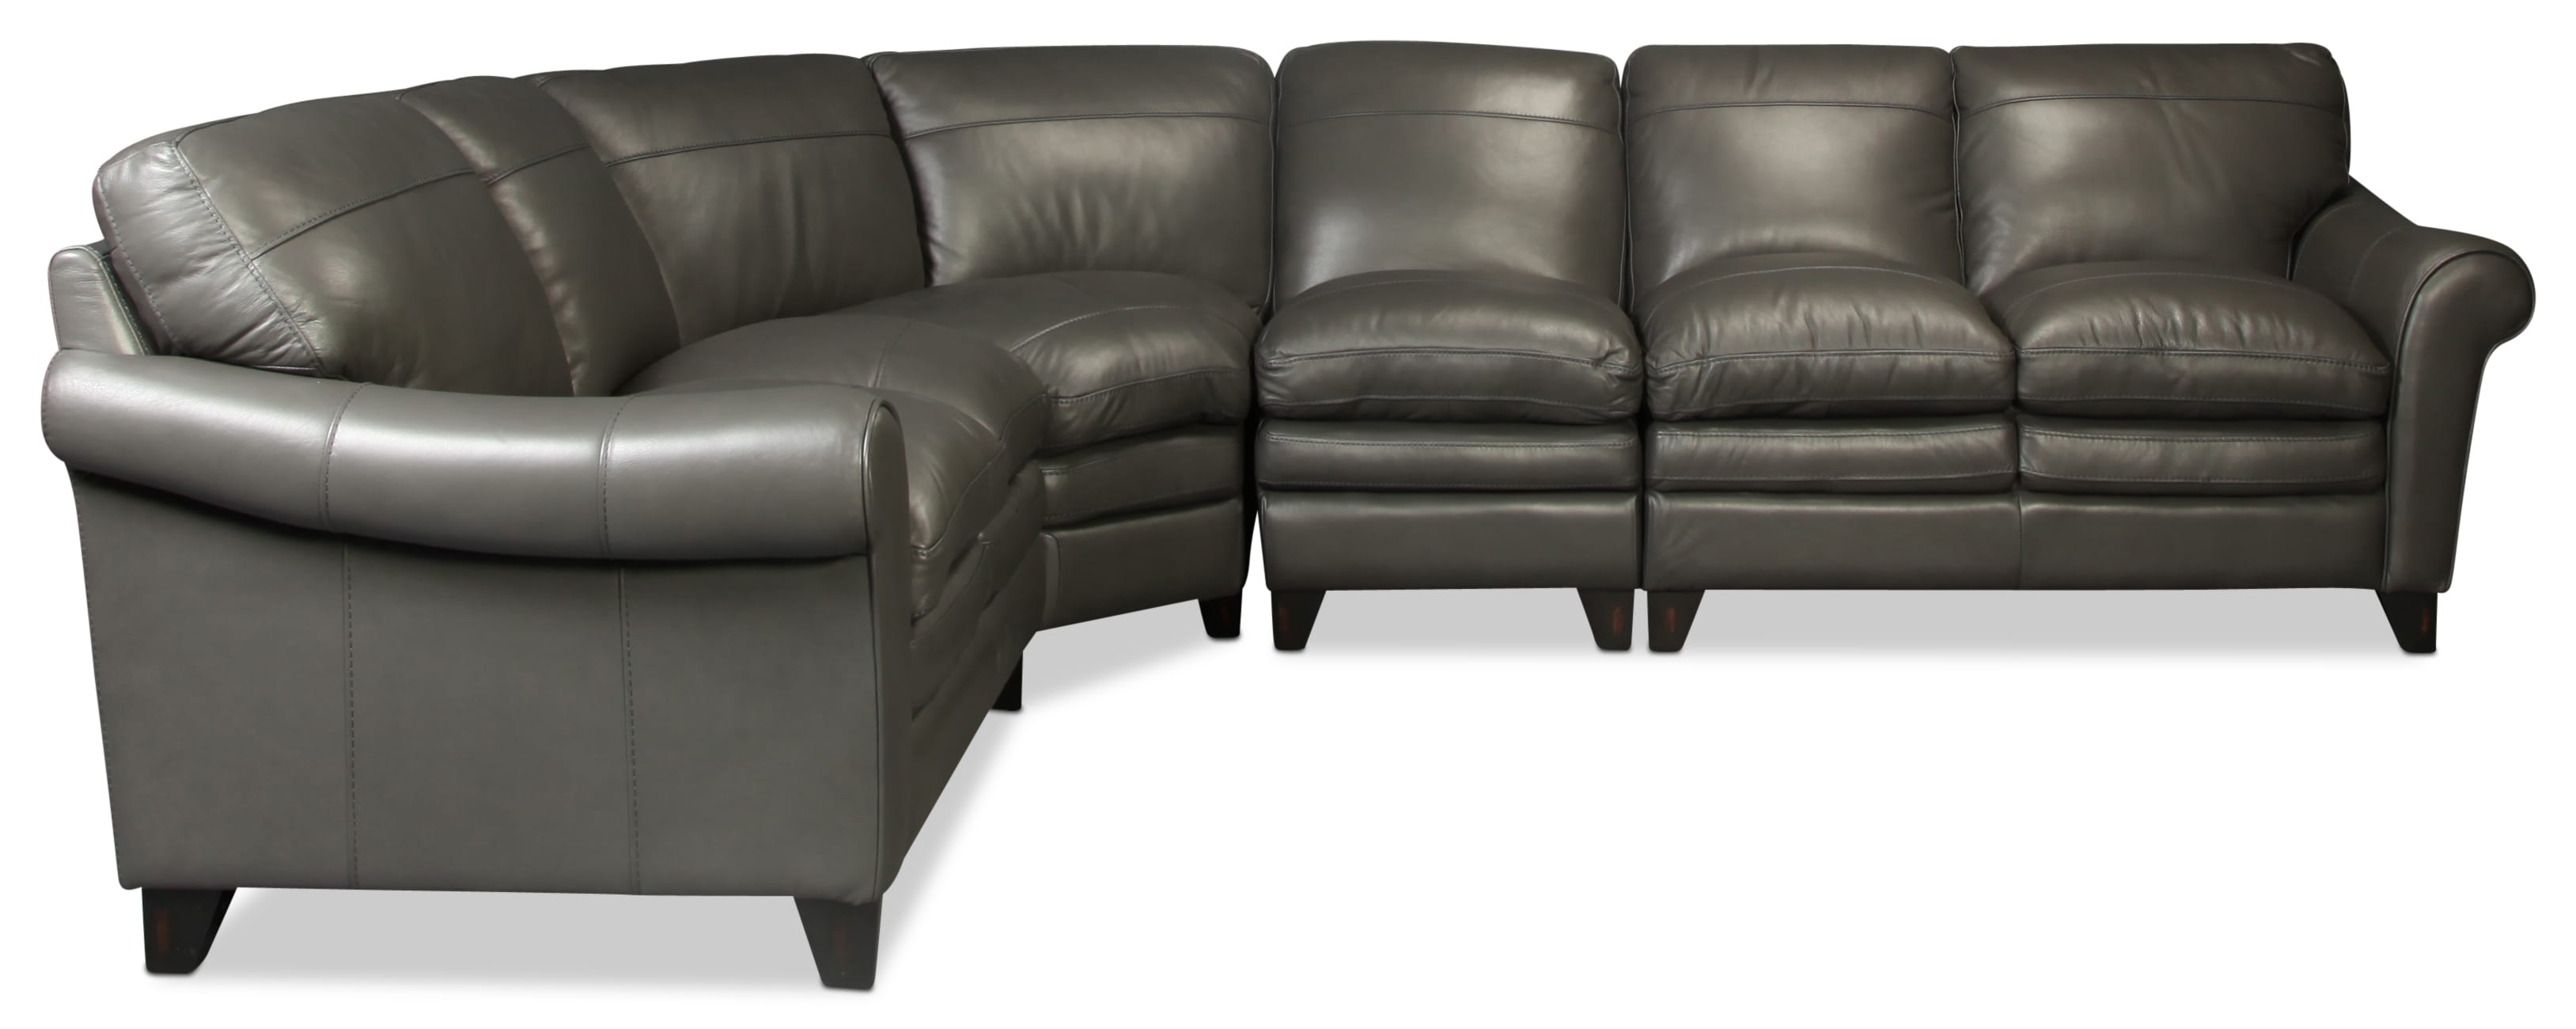 Lafayette 4-Piece Sectional - Charcoal